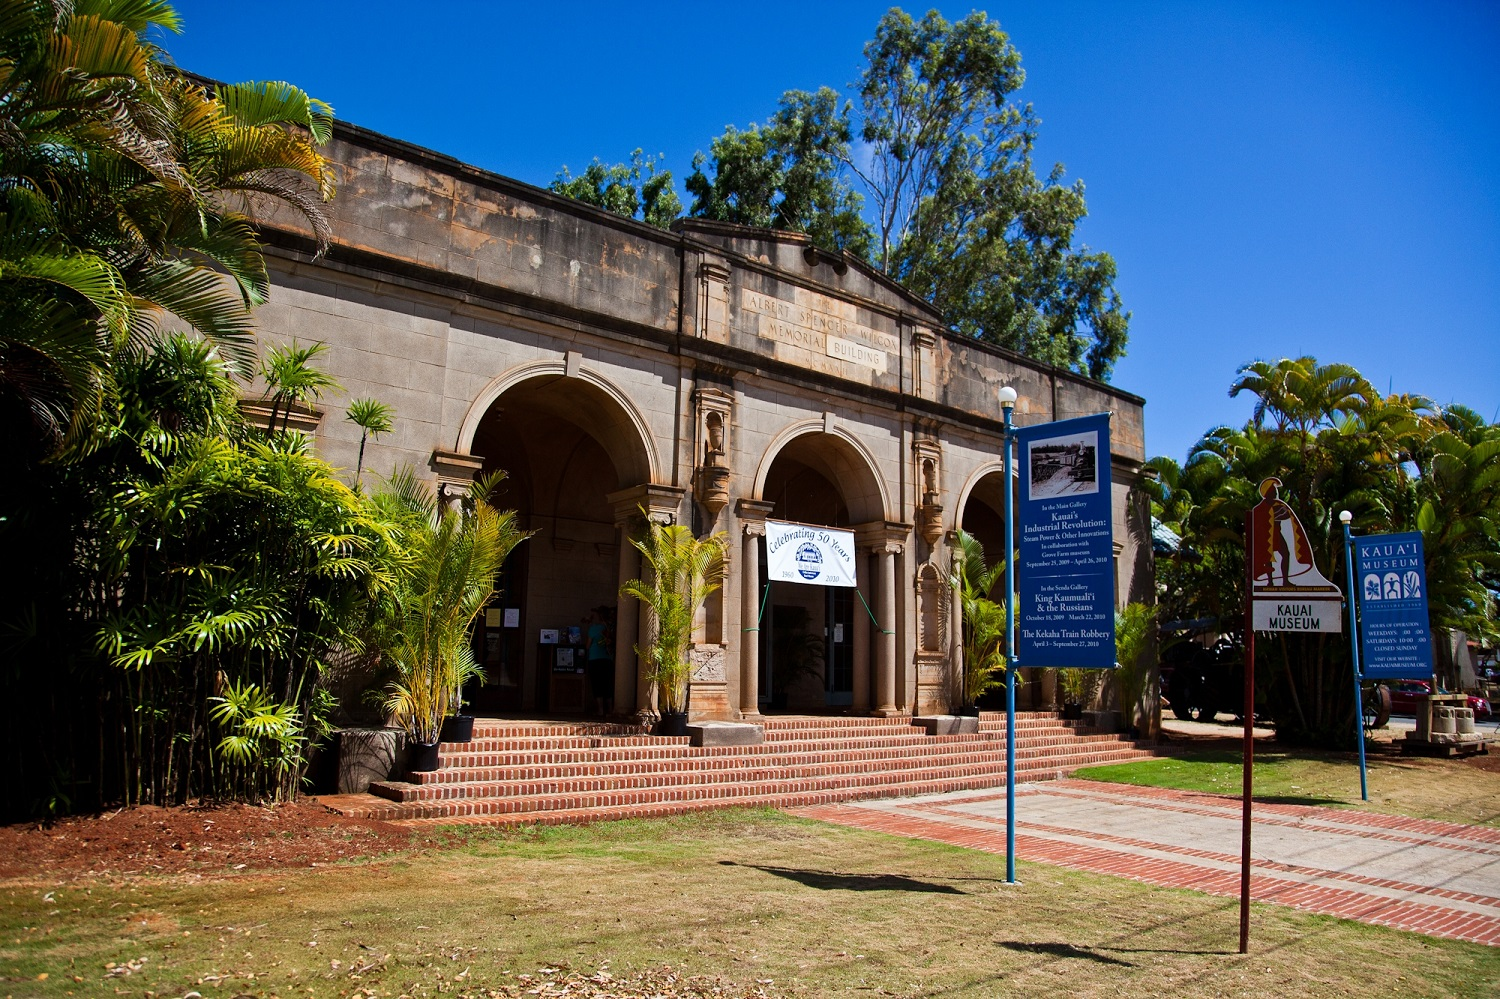 the entrance to the Kauai Museum